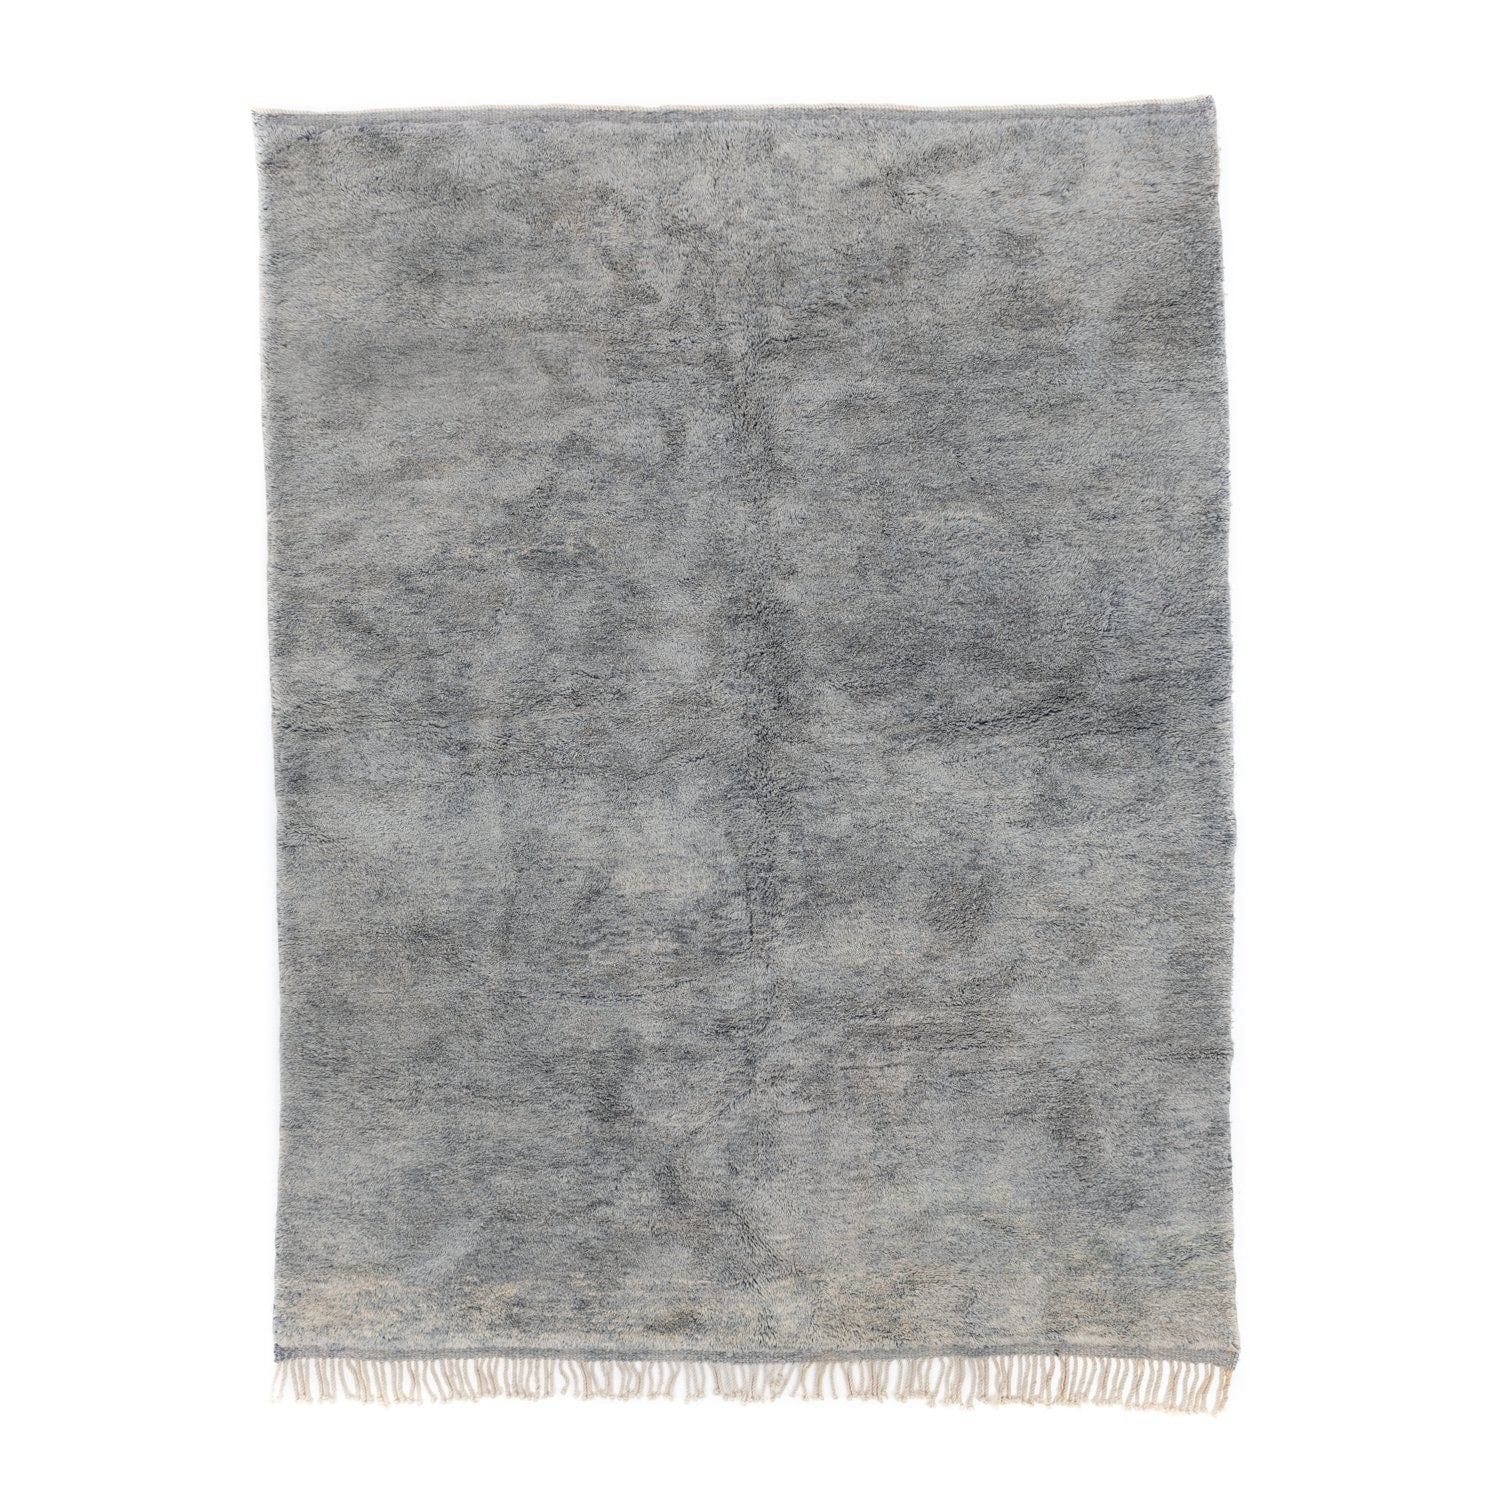 Luxury Mrirt rug 8.1 x 10.6 ft / 248 x 324 cm - Mrirt Rug